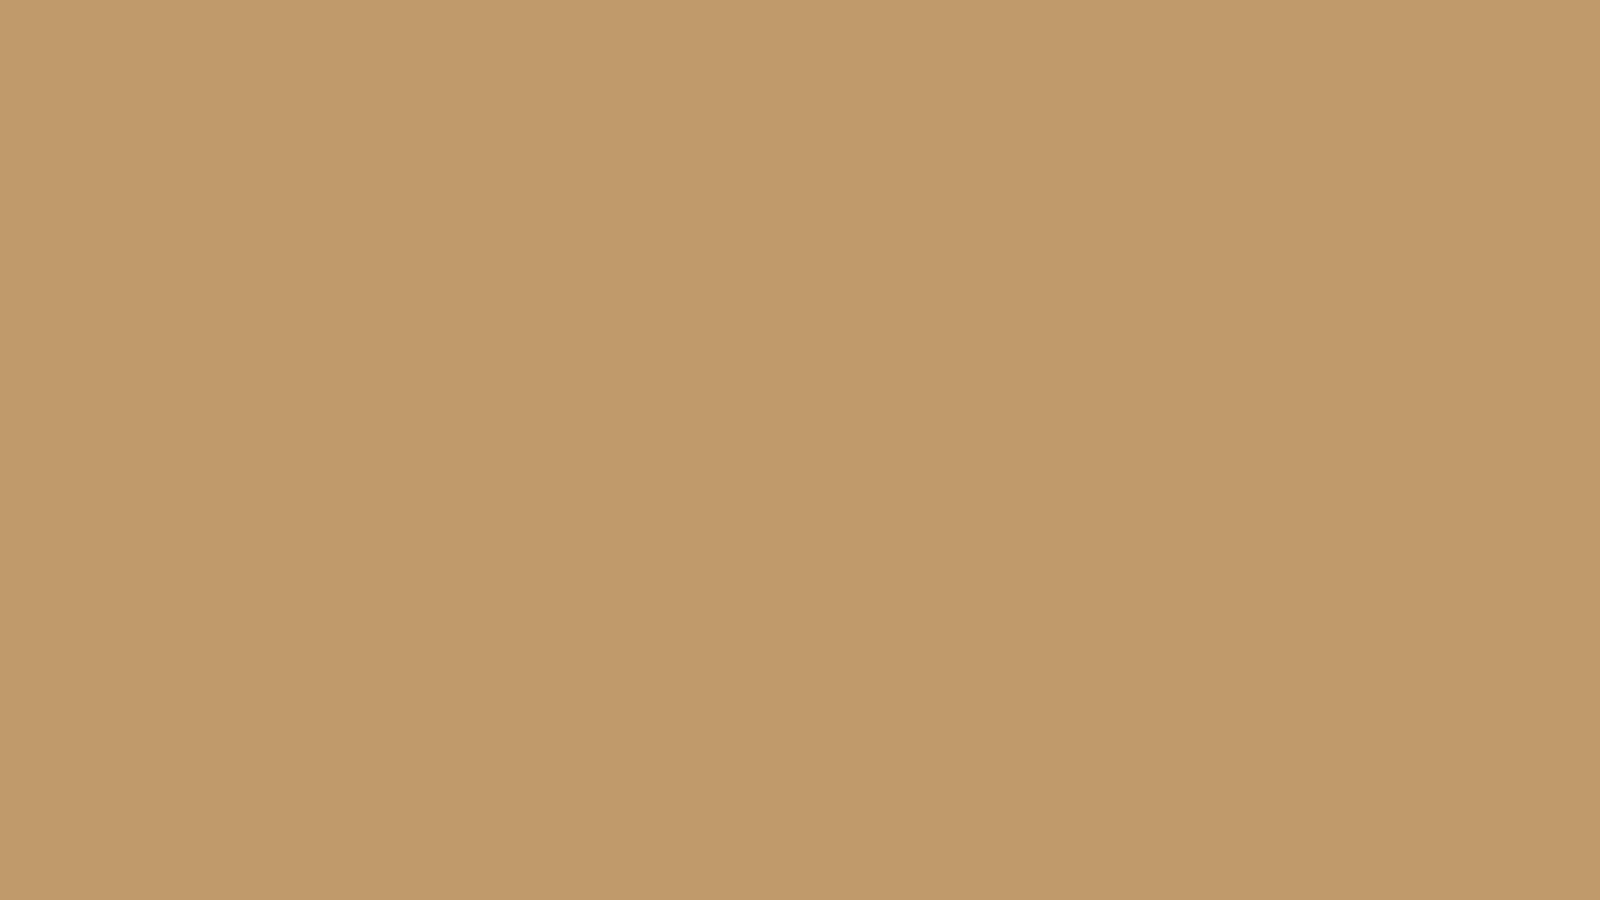 1600x900 Camel Solid Color Background